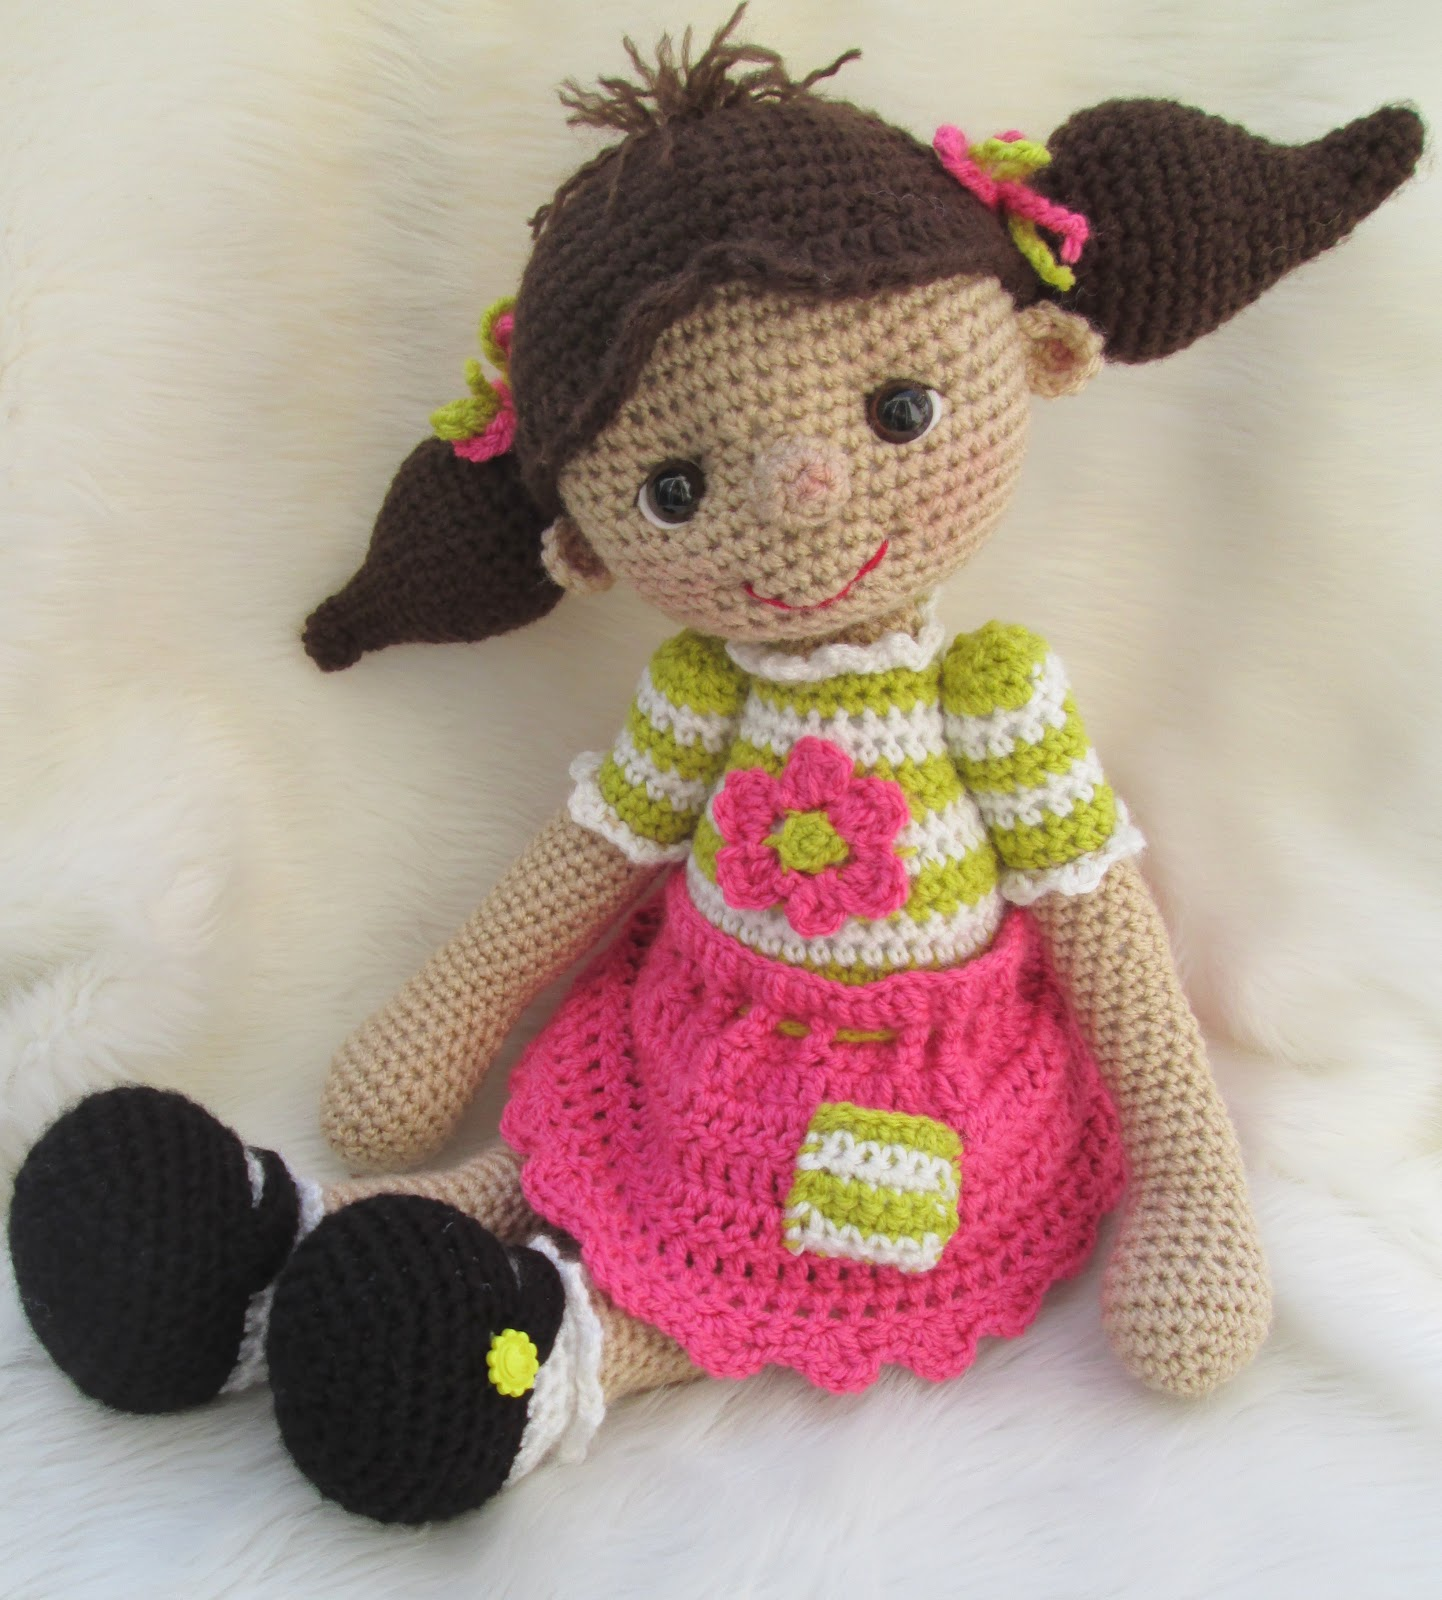 Crochet Doll Pattern Cute : Teris Blog: So Cute Dolly, A New Huggable Dolly Pattern